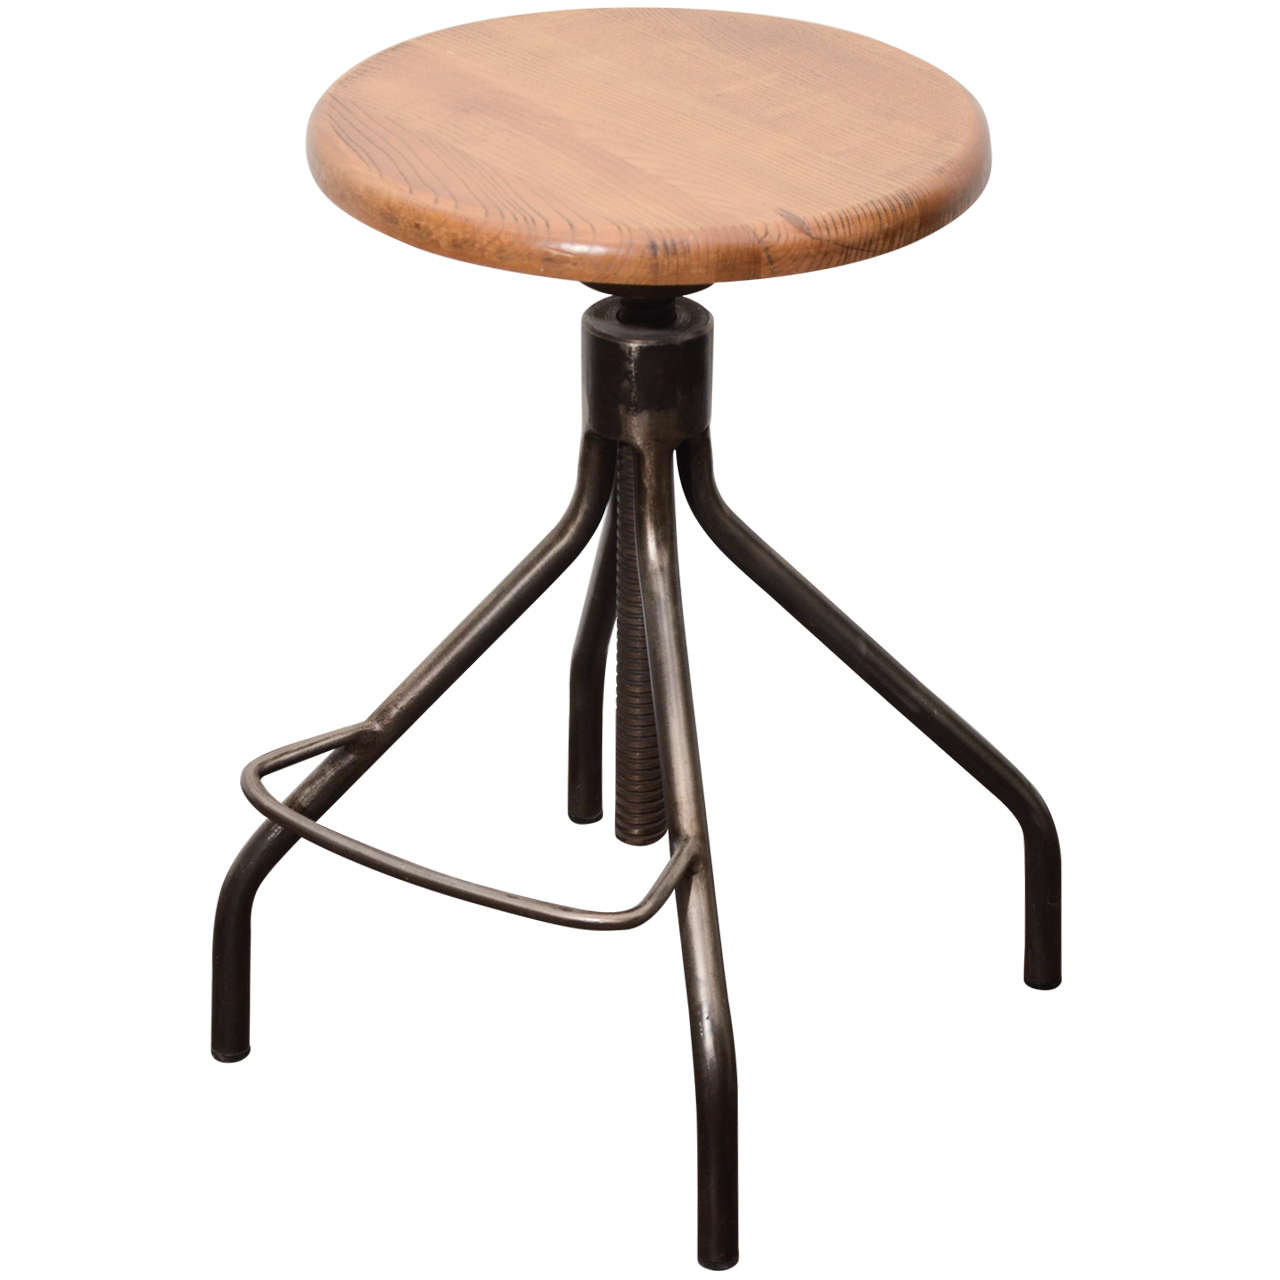 Industrial Stool with Adjustable Wooden Seat at 1stdibs : X from 1stdibs.com size 1280 x 1280 jpeg 56kB